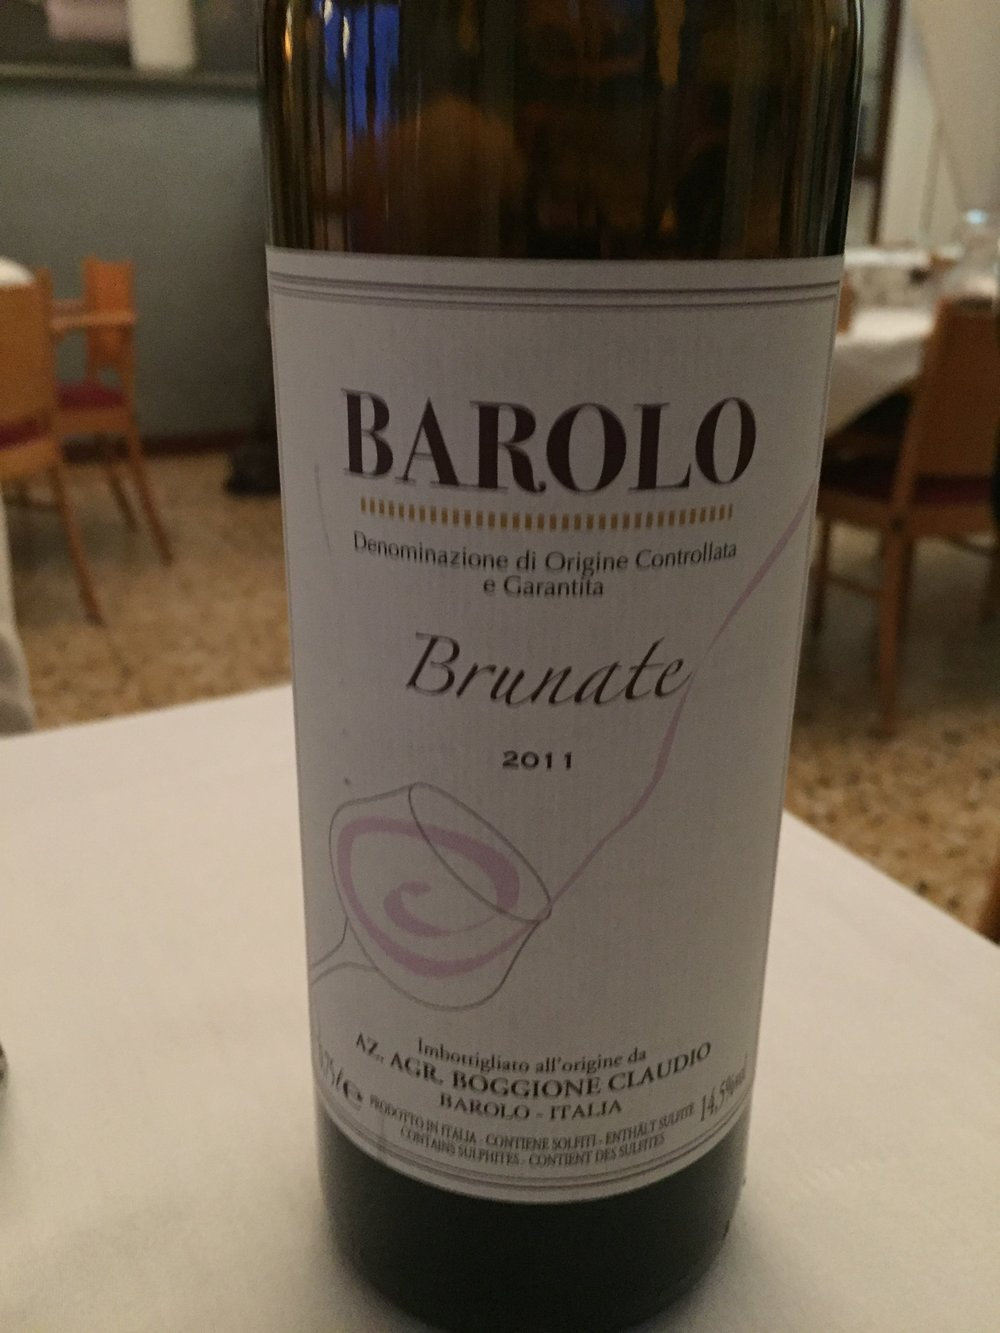 Drinking Barolo while visiting Barolo is just the best!